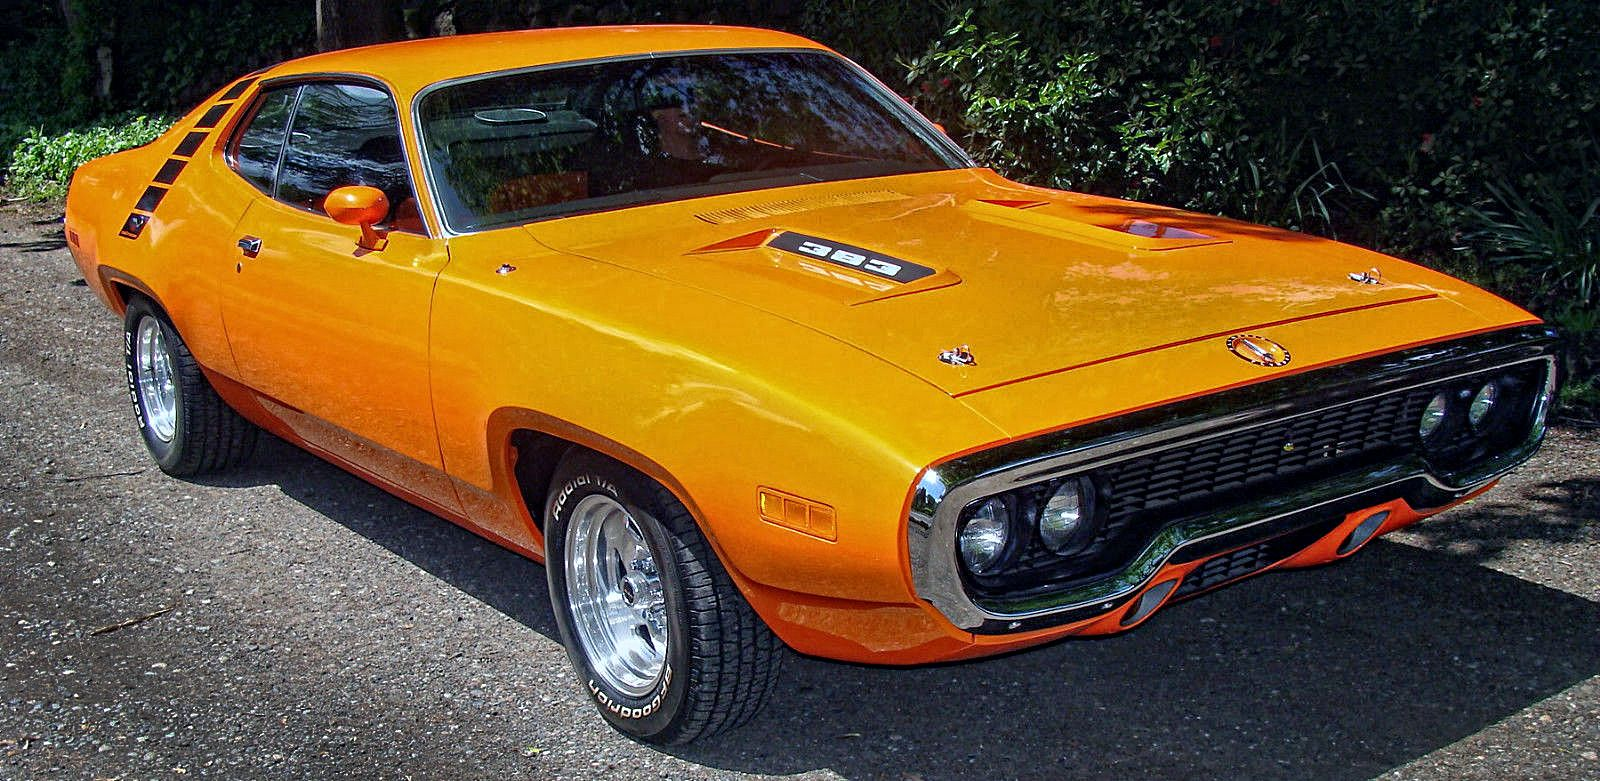 1972 roadrunner 383 magnumre pin brought to you by agents at